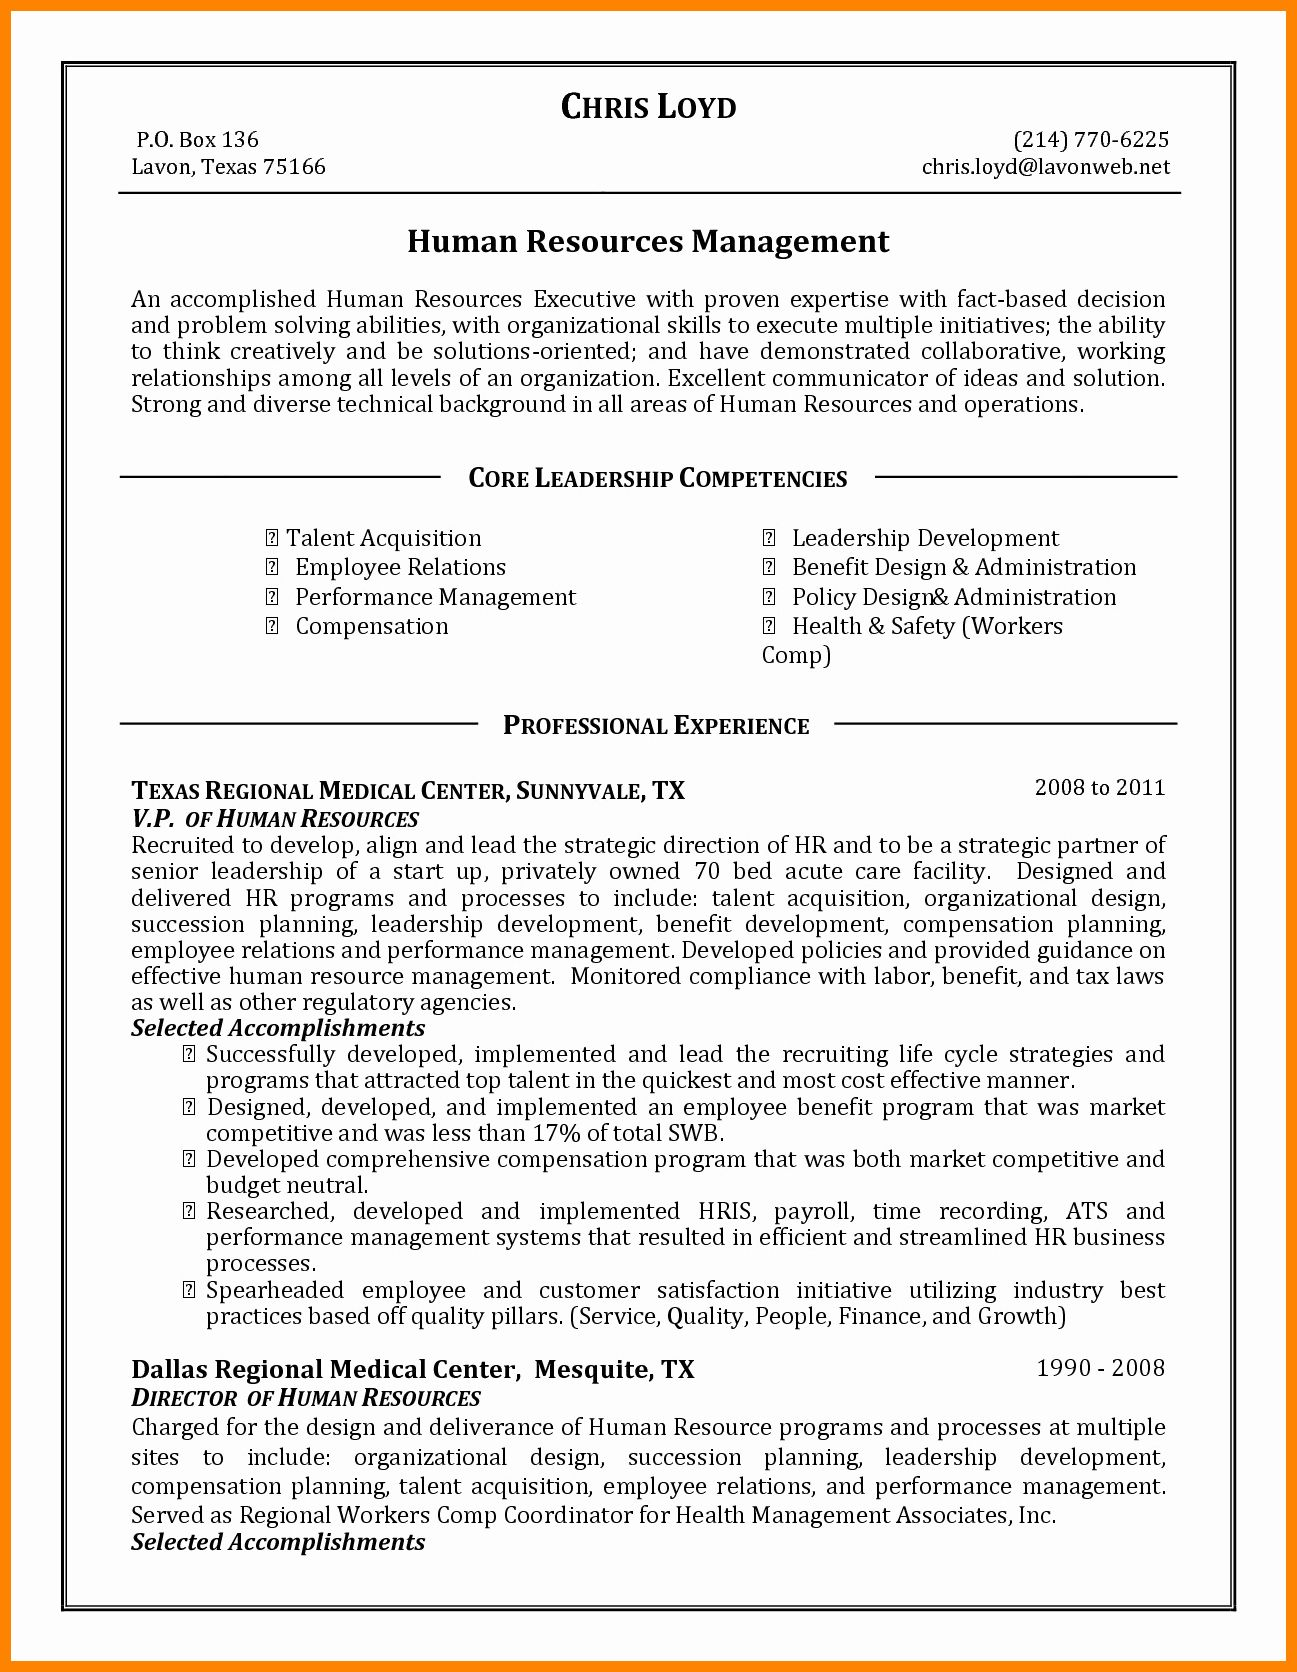 examples of time management skills for resume beautiful organization in planning mistakes Resume Planning Skills For Resume